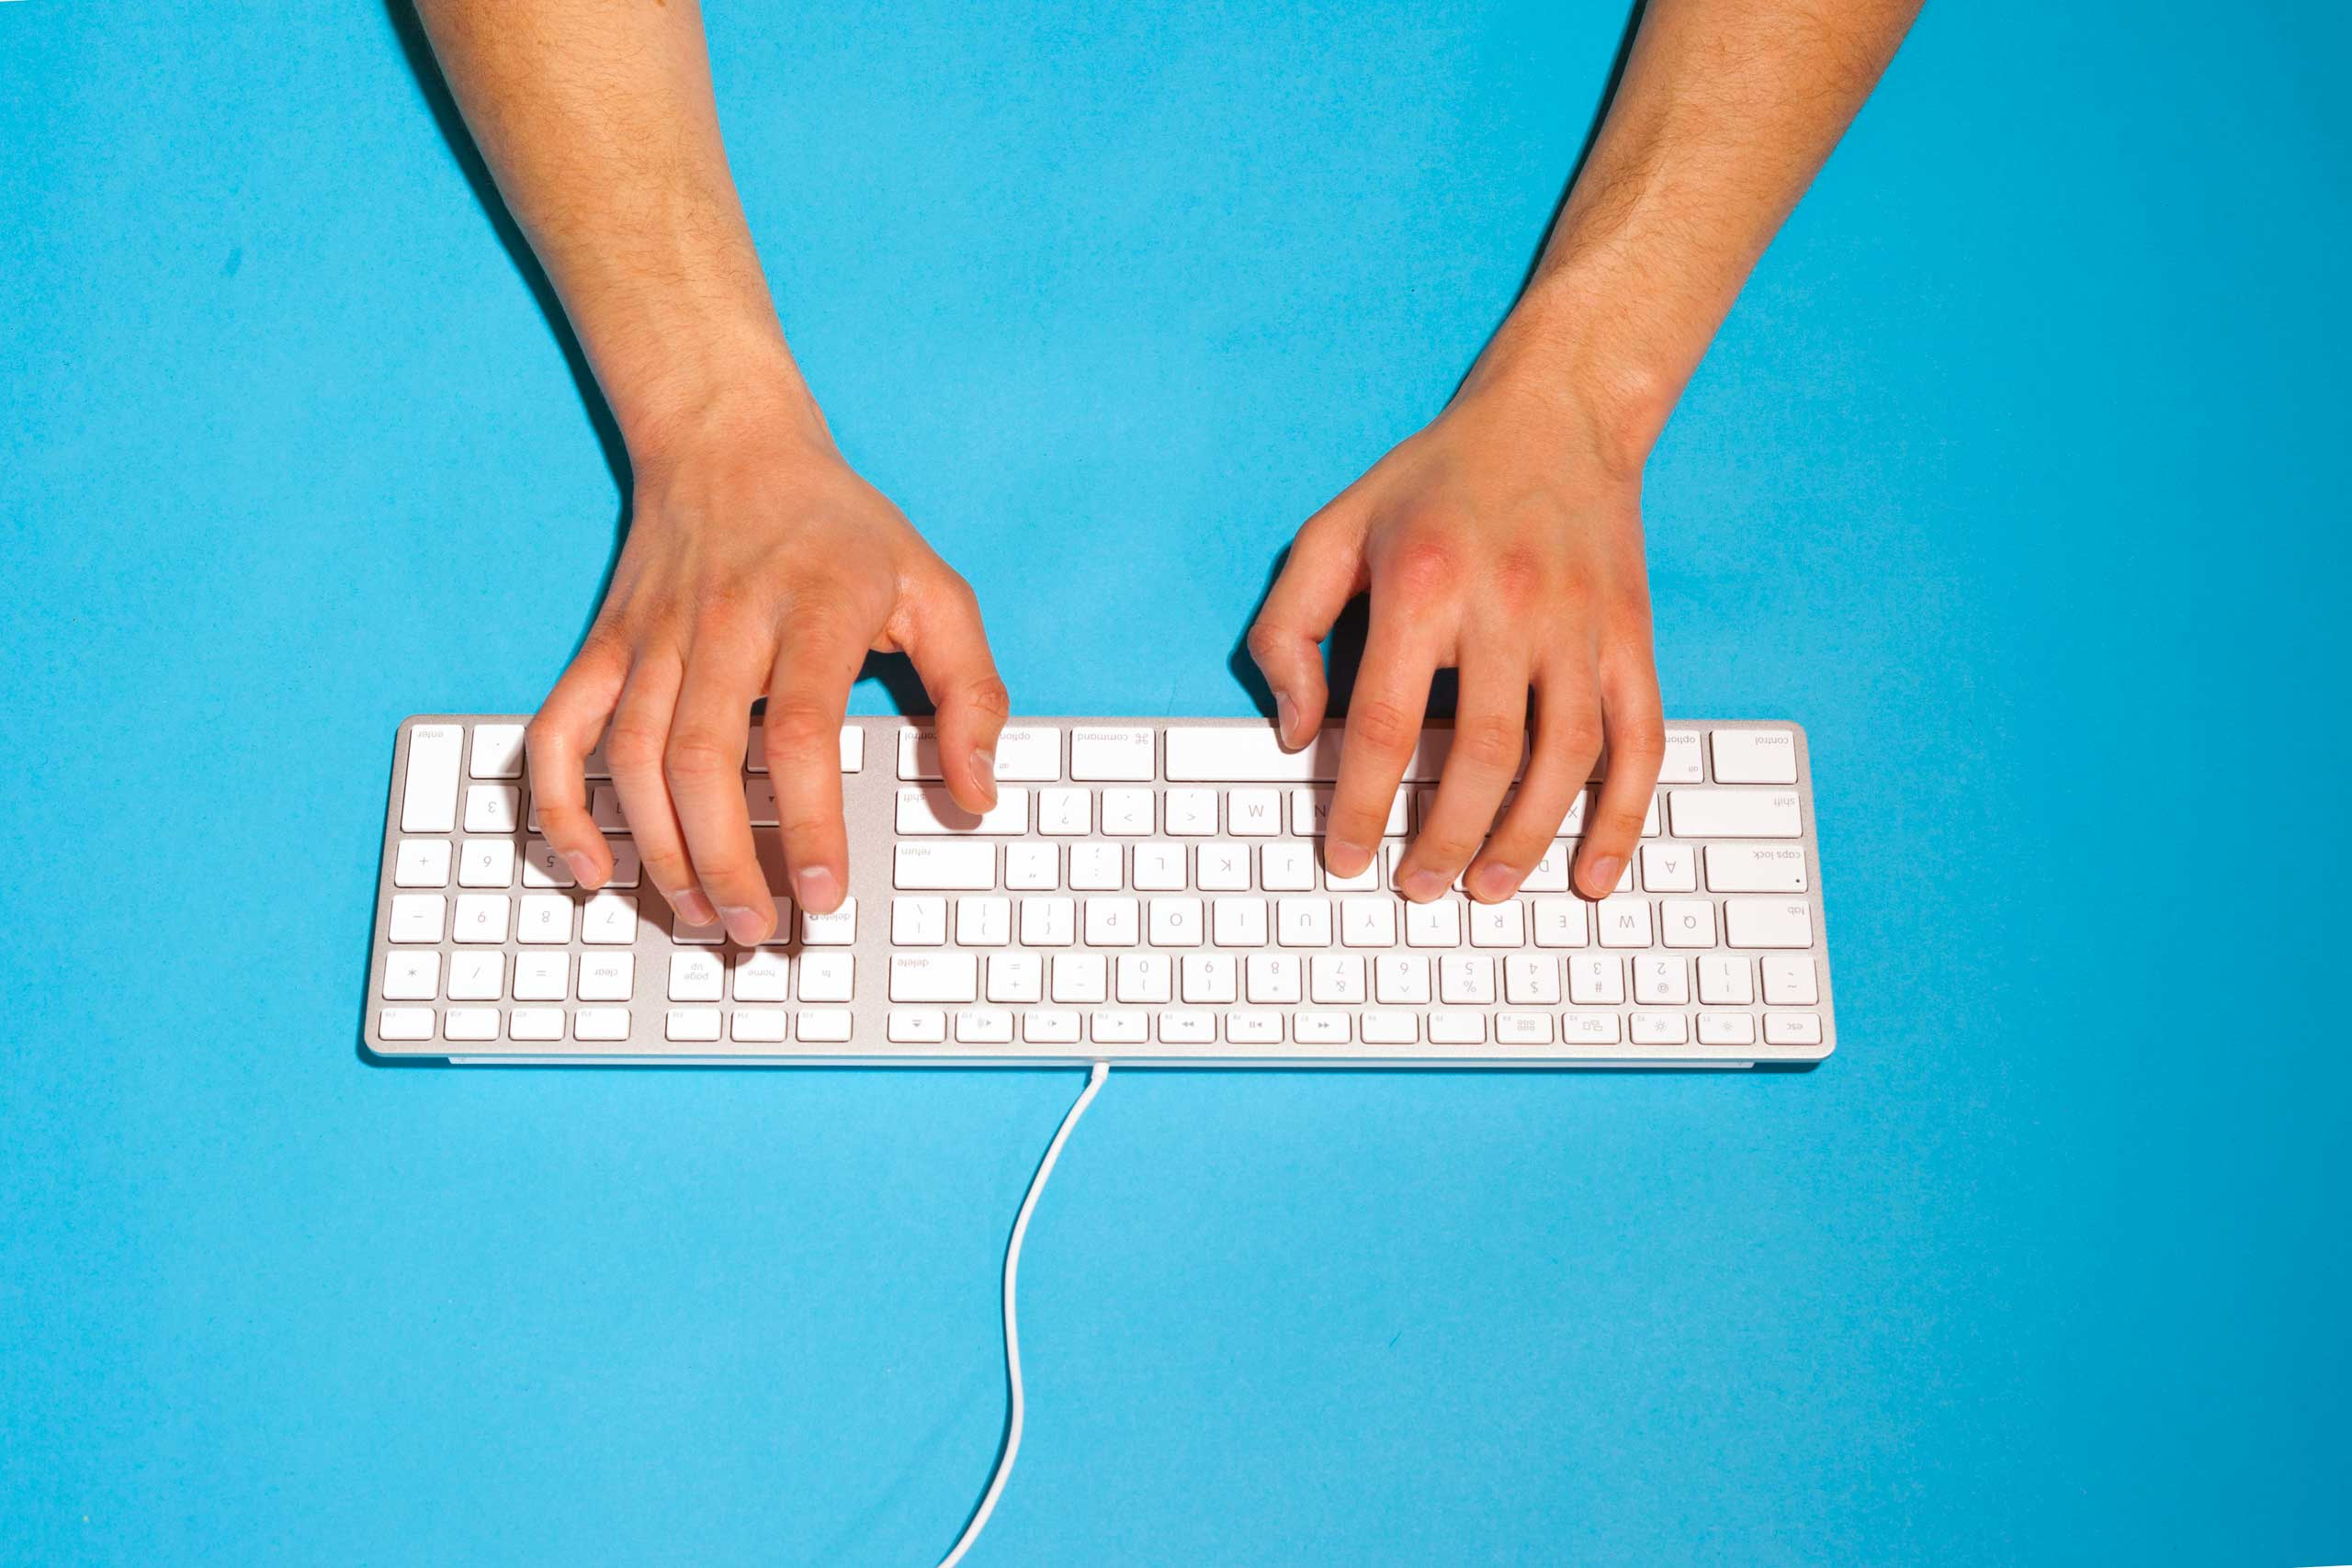 018 Essay Example Computer Keyboard Typing Favorite Day Of The Outstanding Week Sunday Is My Full